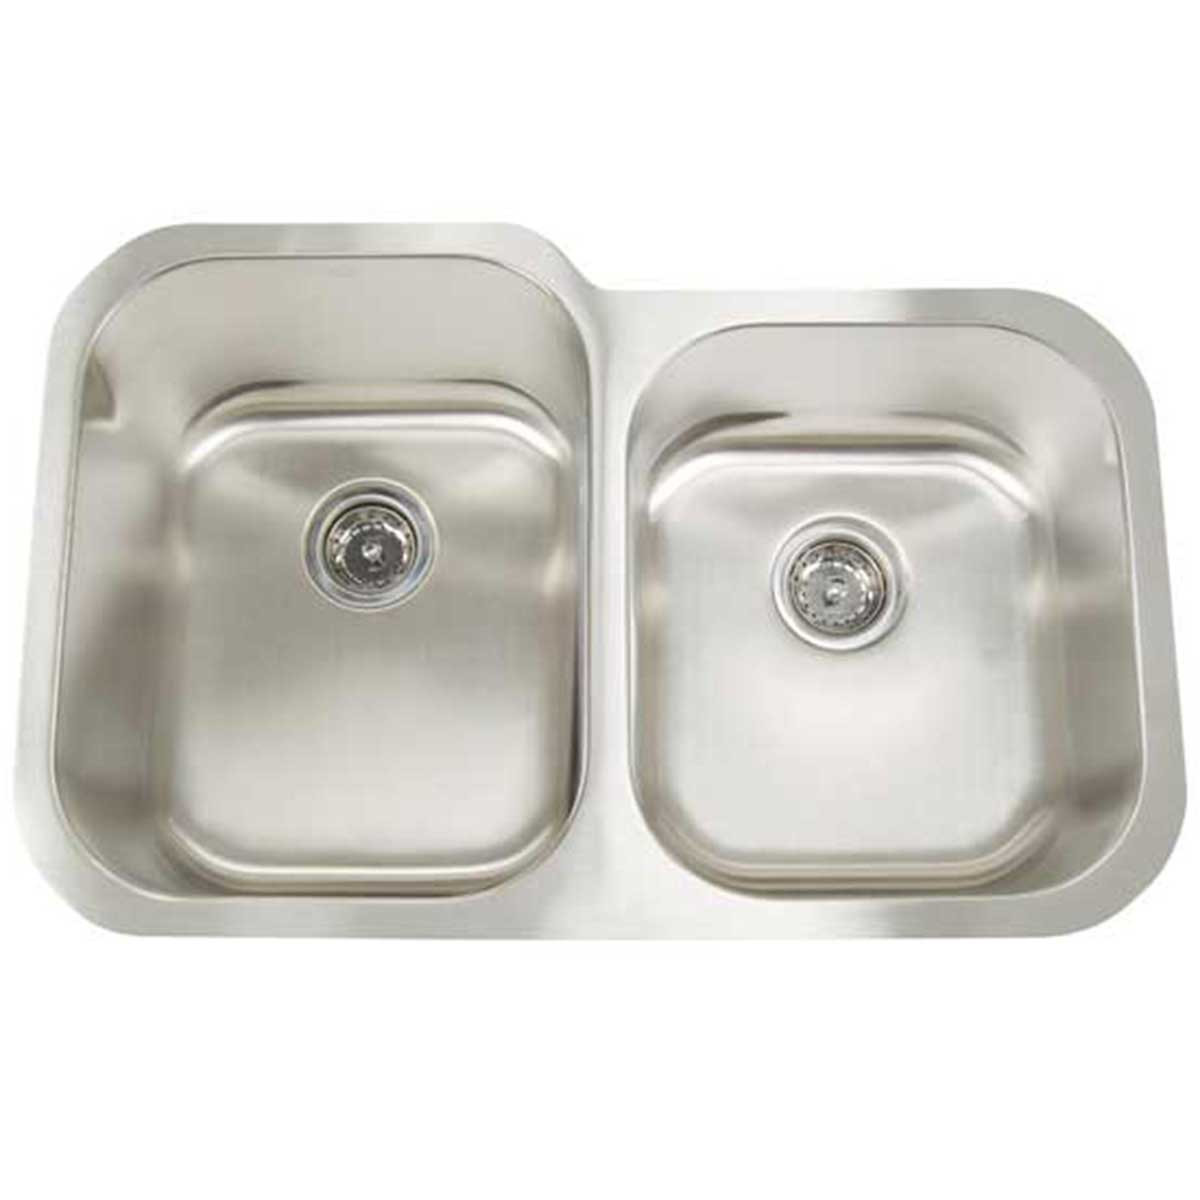 Artisan undermount Double Bowl Sink